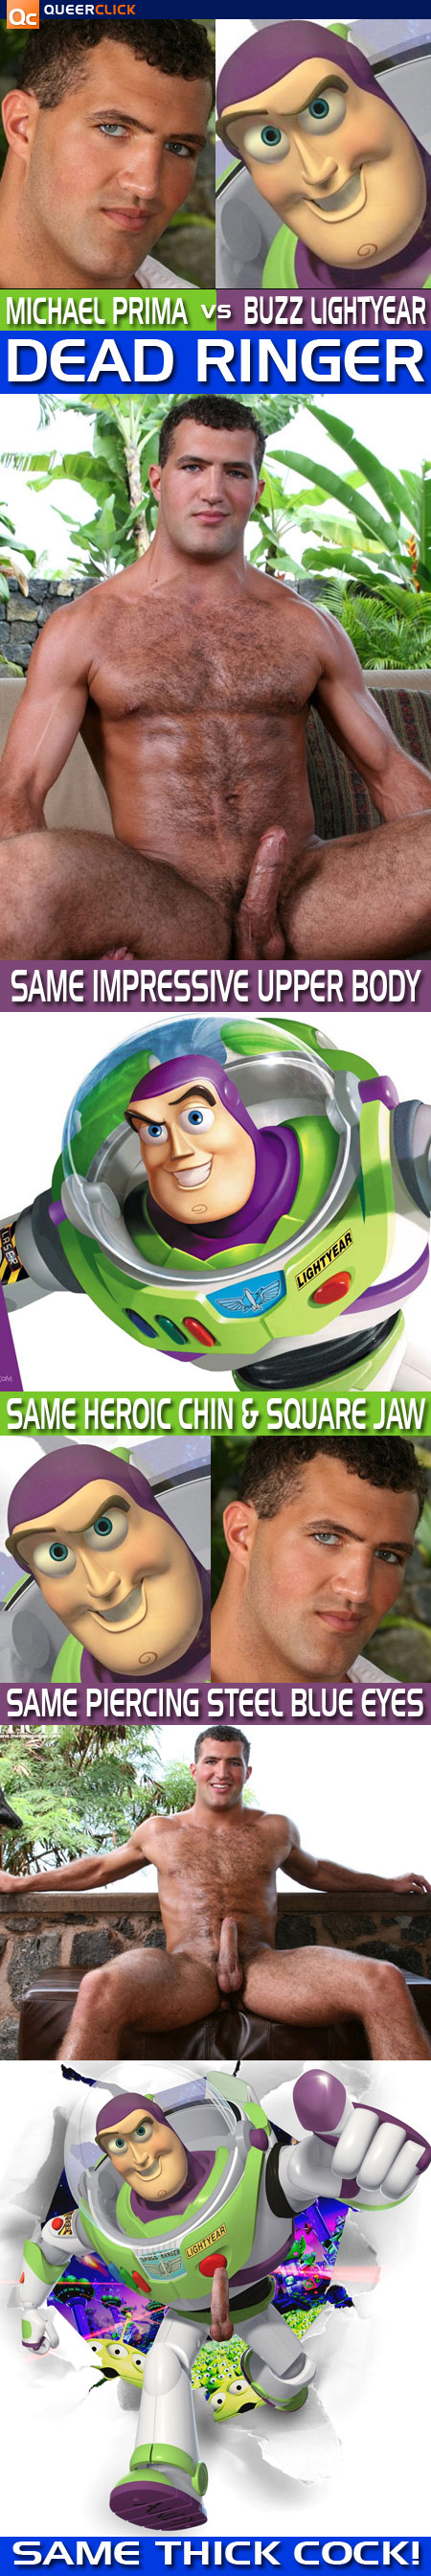 Dead Ringer: Men Machine's Michael Prima vs. Buzz Lightyear